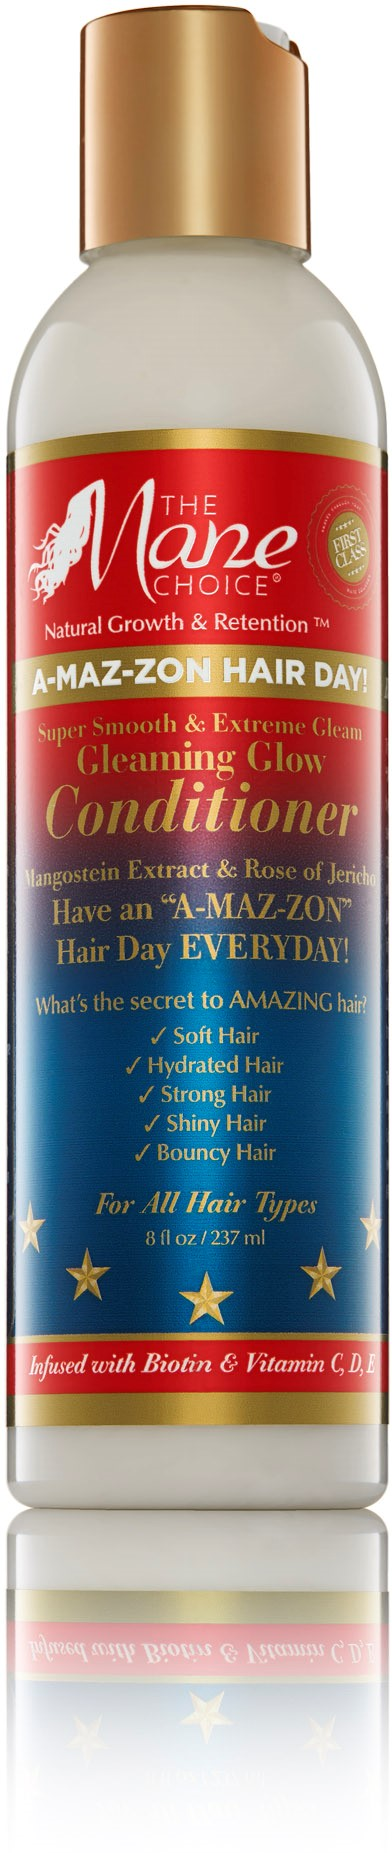 The Mane Choice A-Maz-Zon Hair Day Gleaming Glow Conditioner